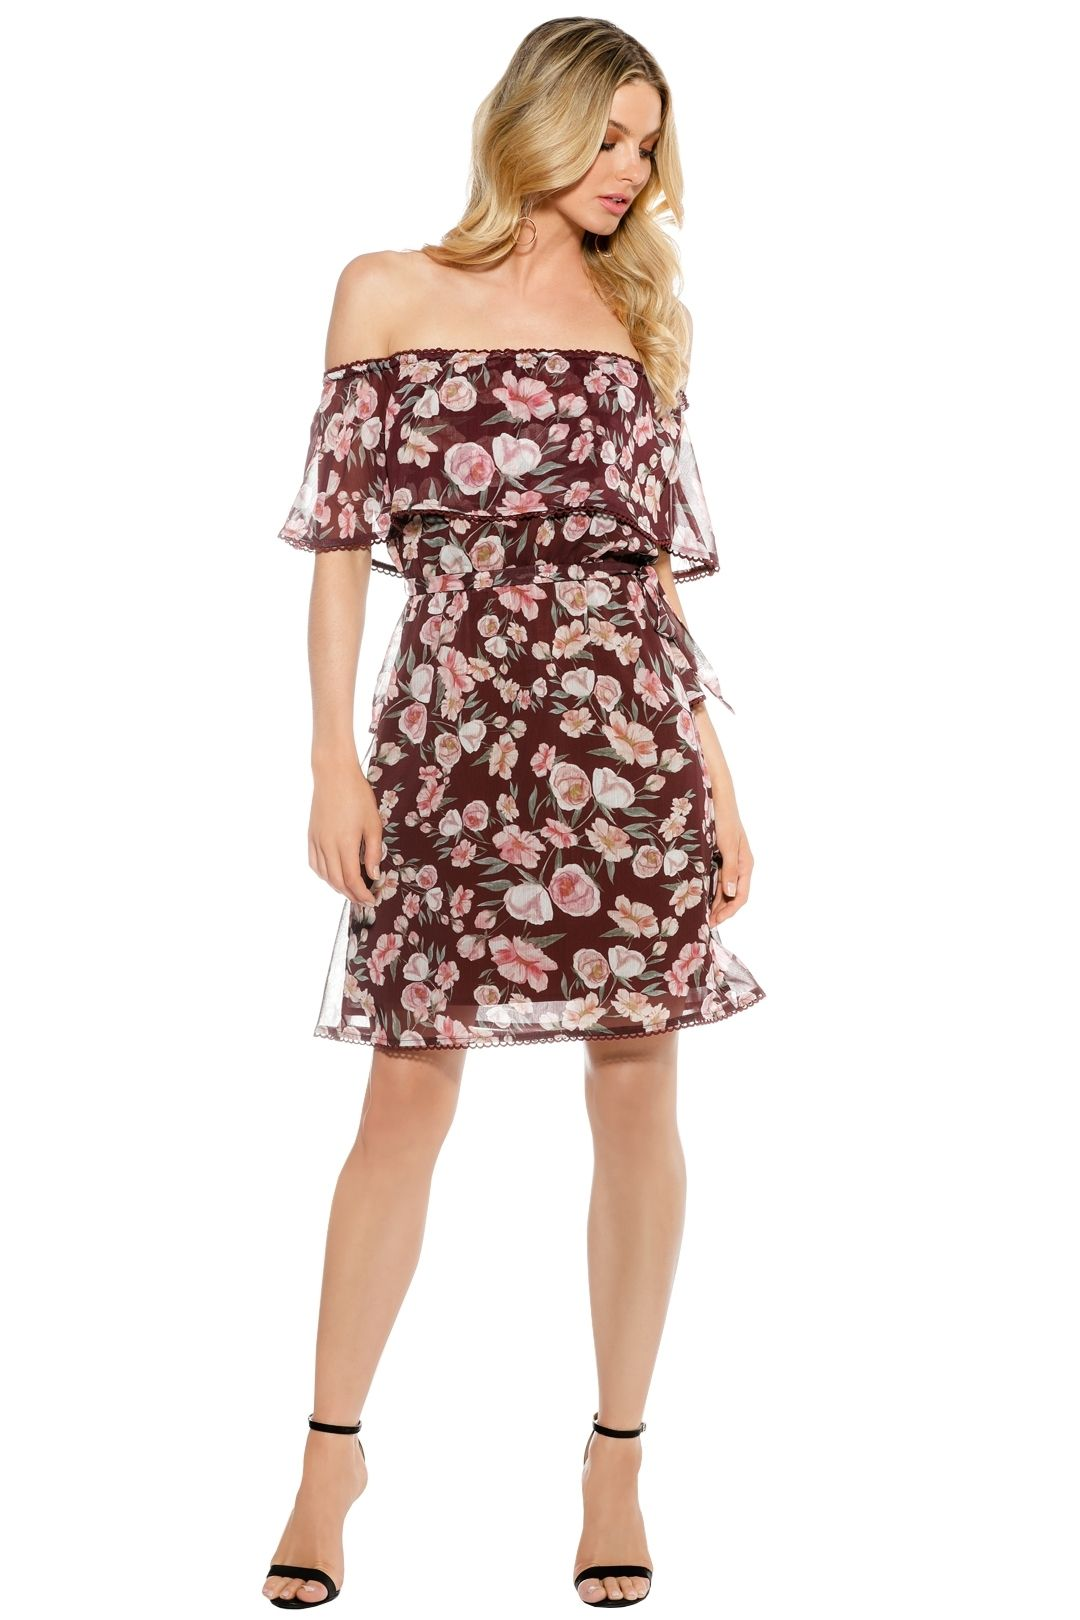 We Are Kindred - Meg Off Shoulder Dress - Floral Red - Front